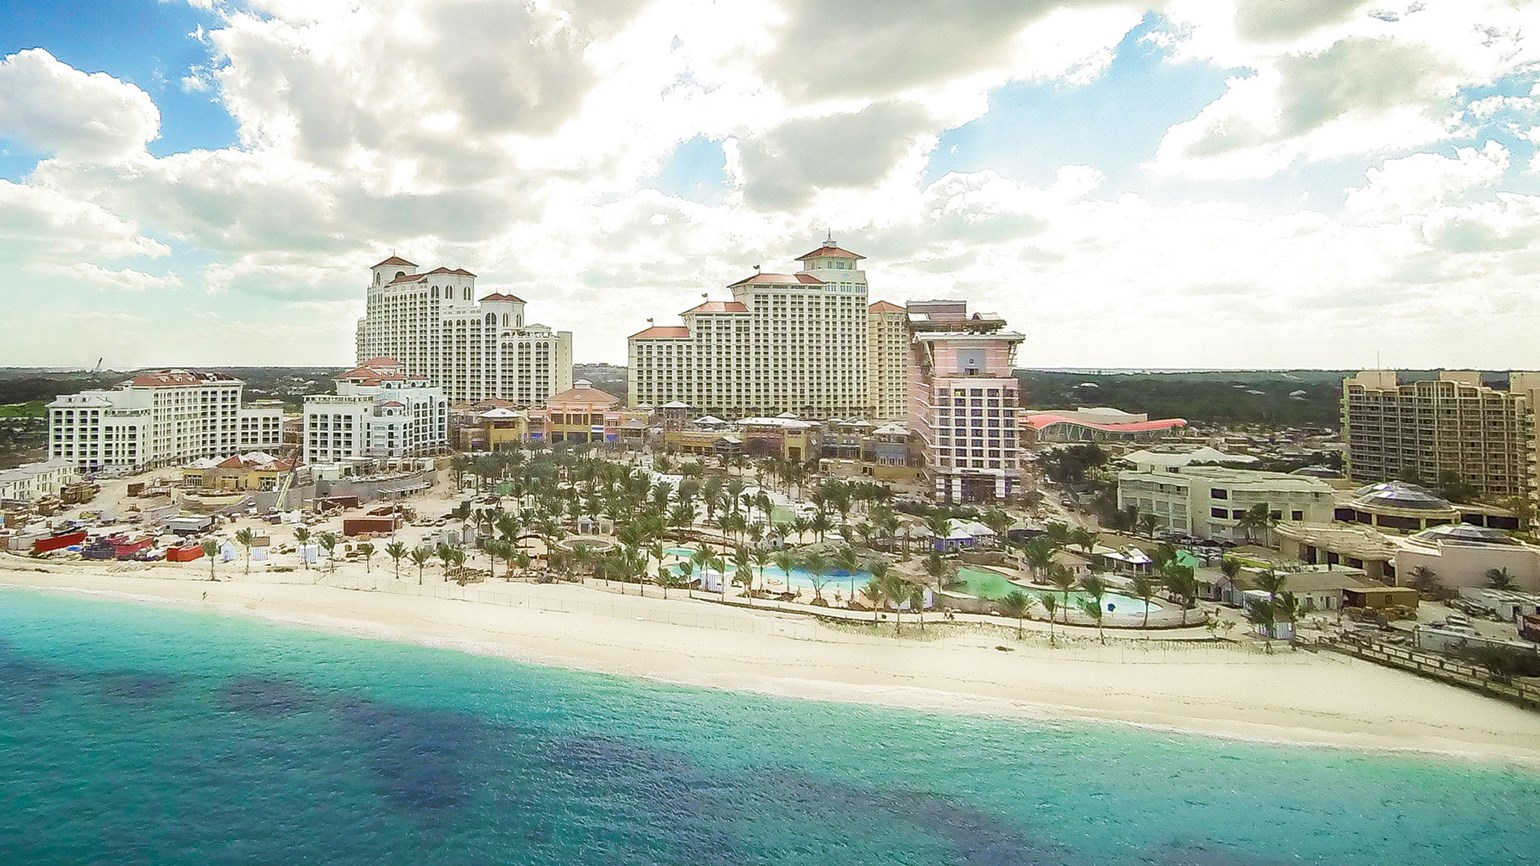 Baha Mar: A World Away from the Everyday